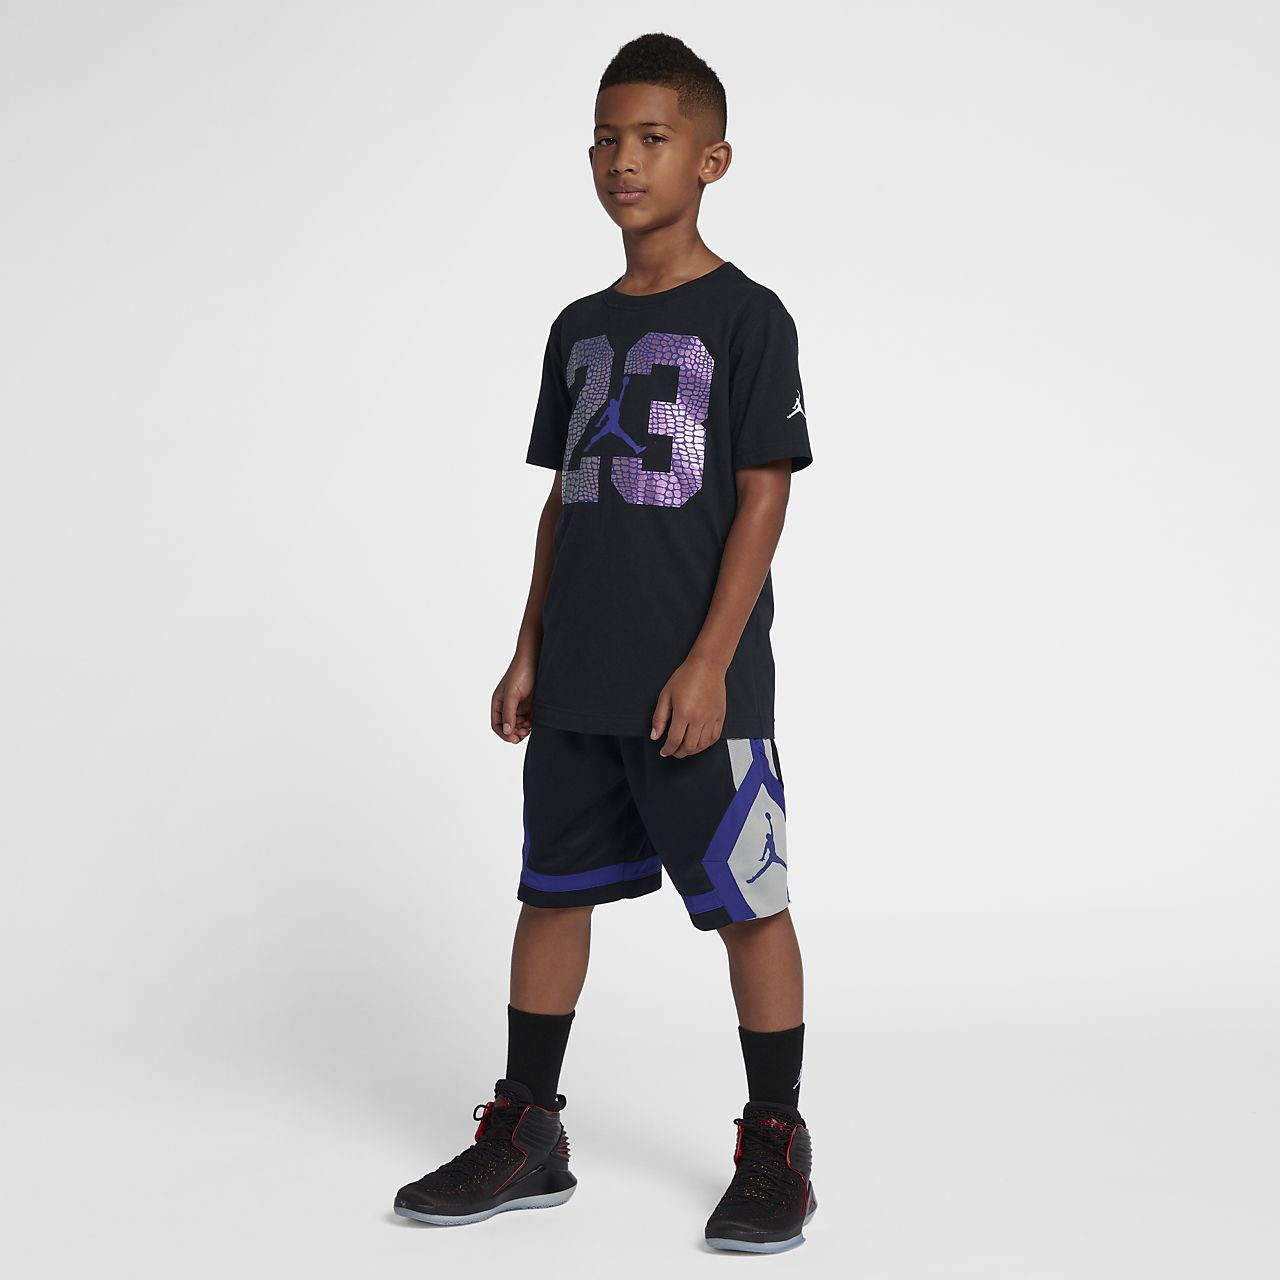 063e13b345608a Jordan Rise Diamond Older Kids  (Boys ) Shorts. Nike.com GB